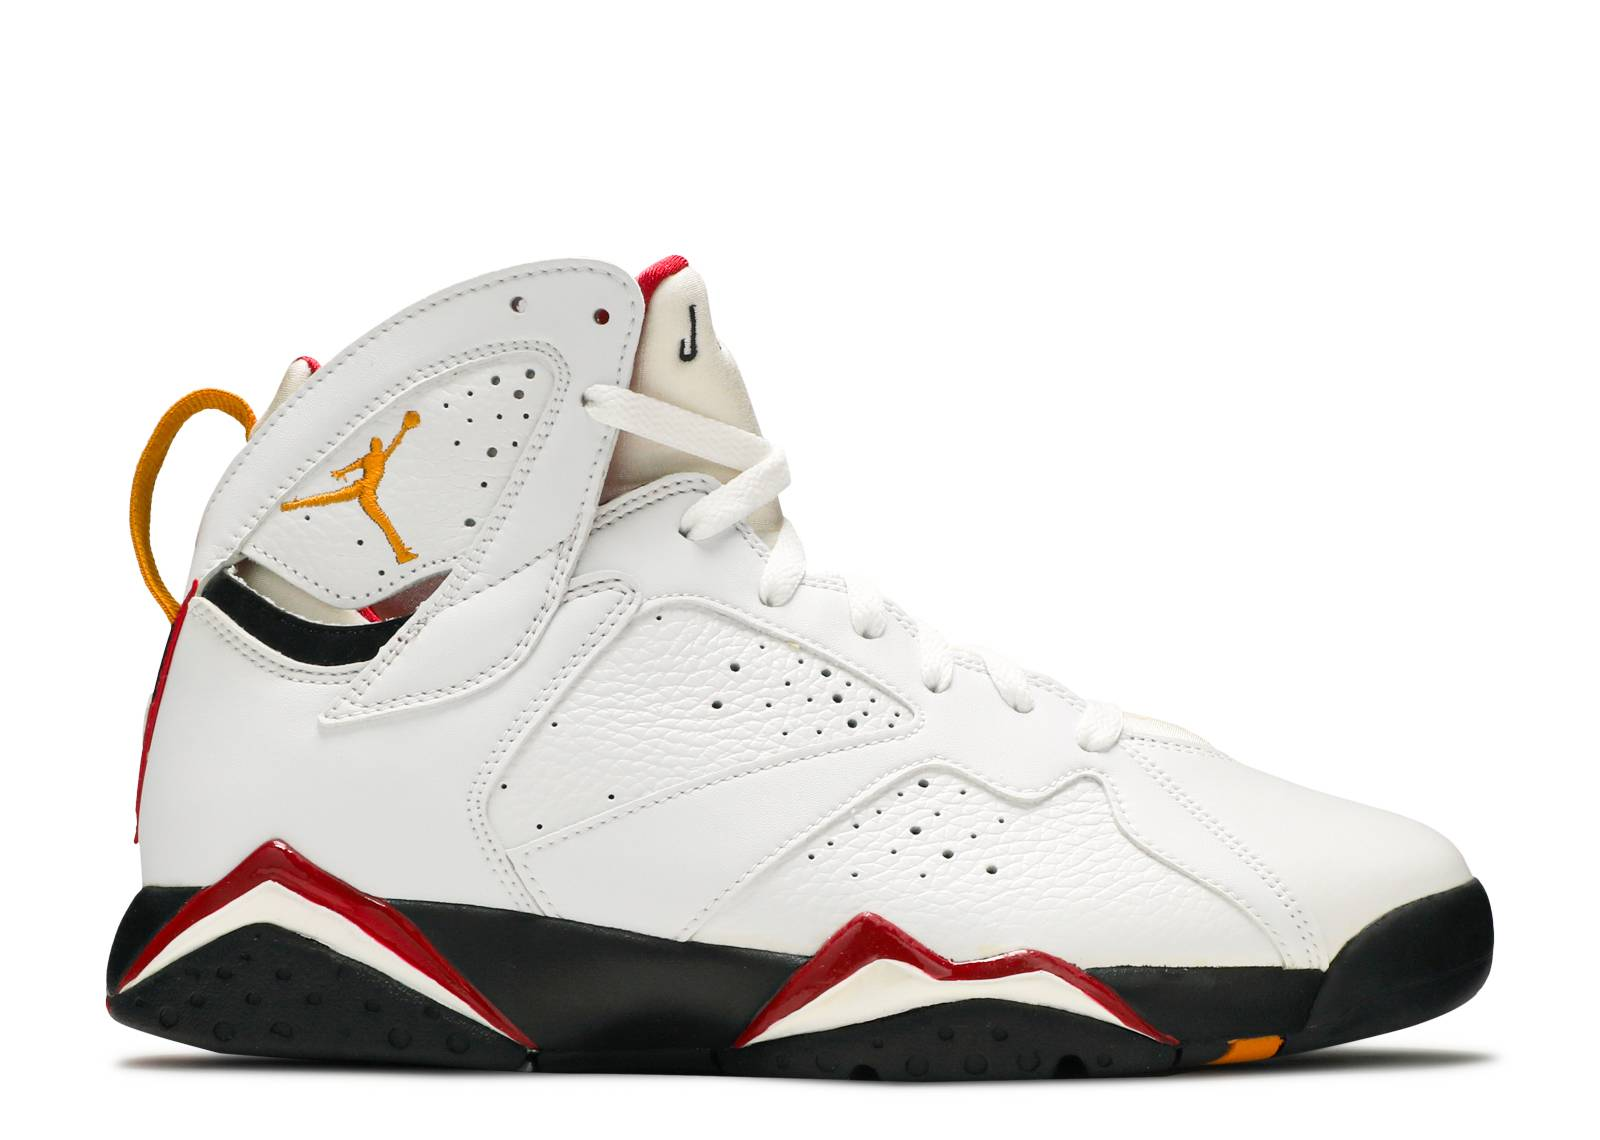 newest collection c47e5 461e3 Air Jordan 7 Retro 'Cardinal' 2006